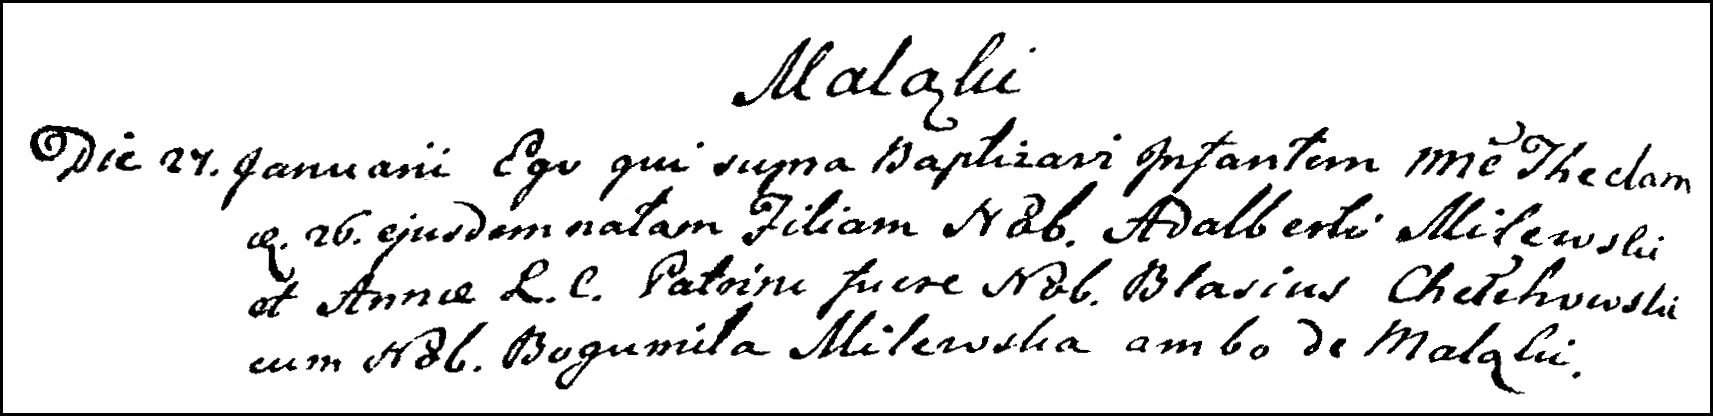 The Birth and Baptismal Record of Tekla Milewska - 1791